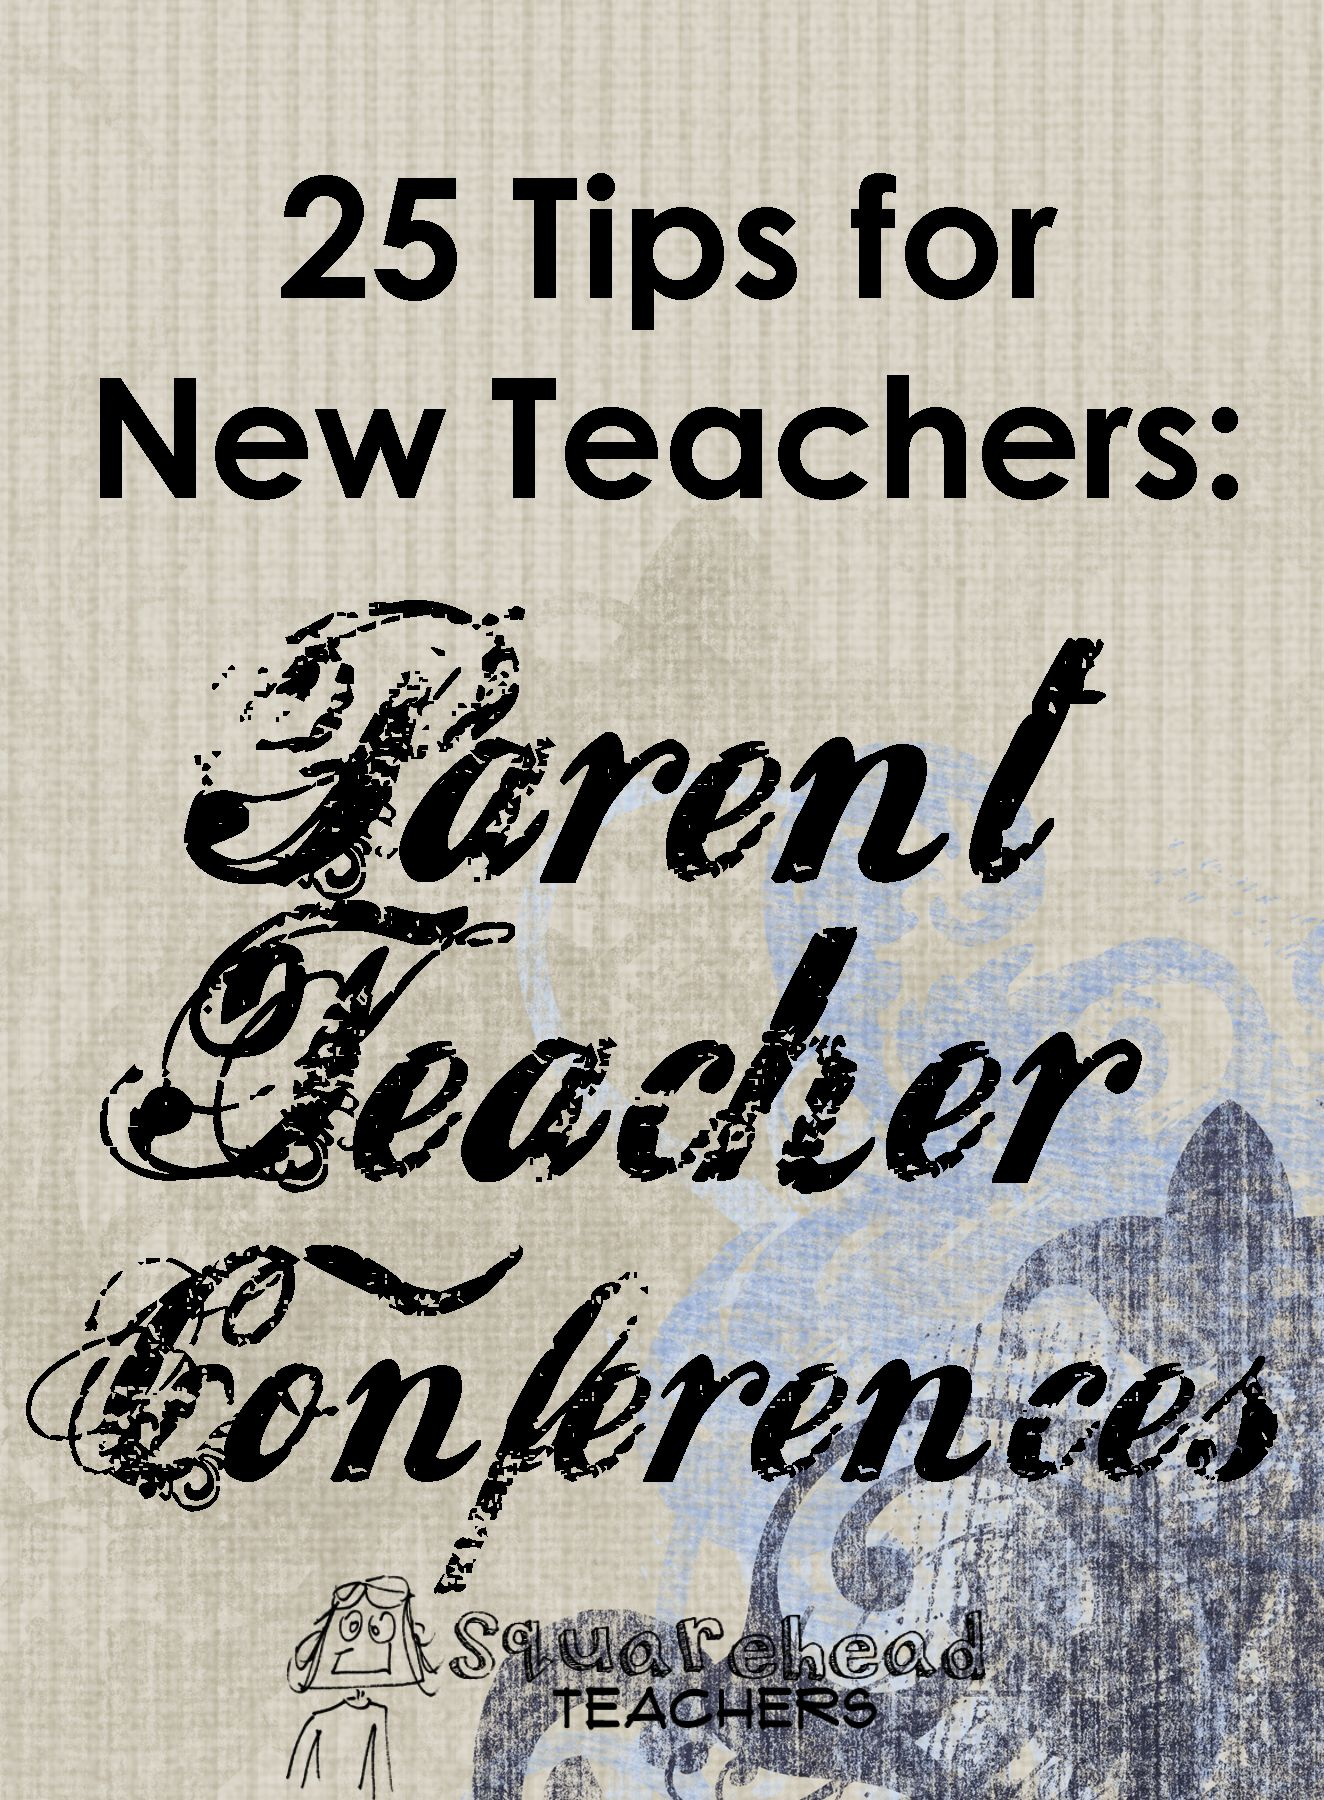 Parent teacher conferences ptc can be intimidating for new parent teacher conferences ptc can be intimidating for new teachers here are 25 tips to help you survive ptc and get the most out of it spiritdancerdesigns Images